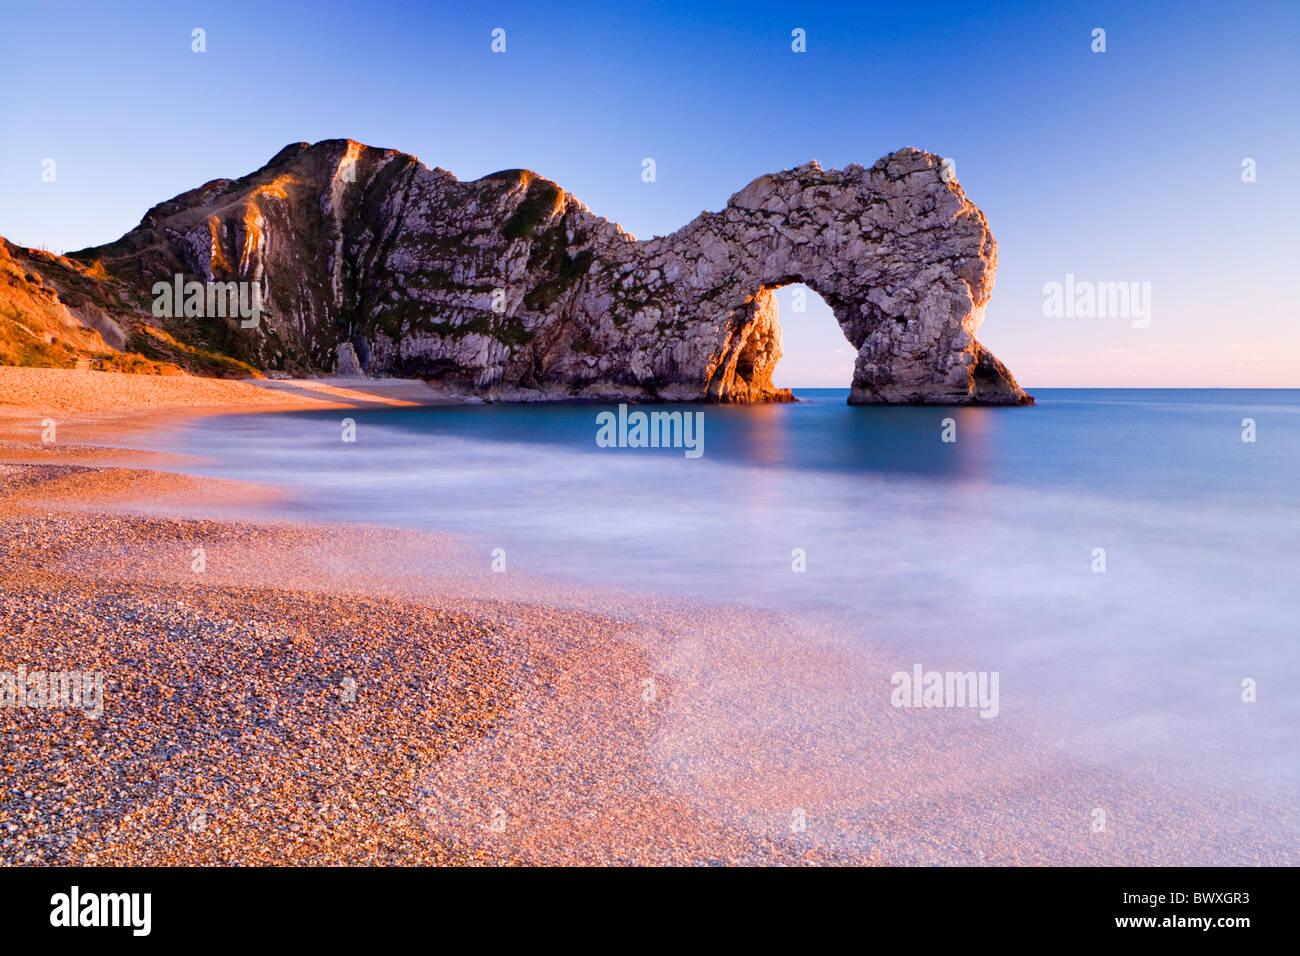 Durdle Door, Dorset, UK Photo Stock